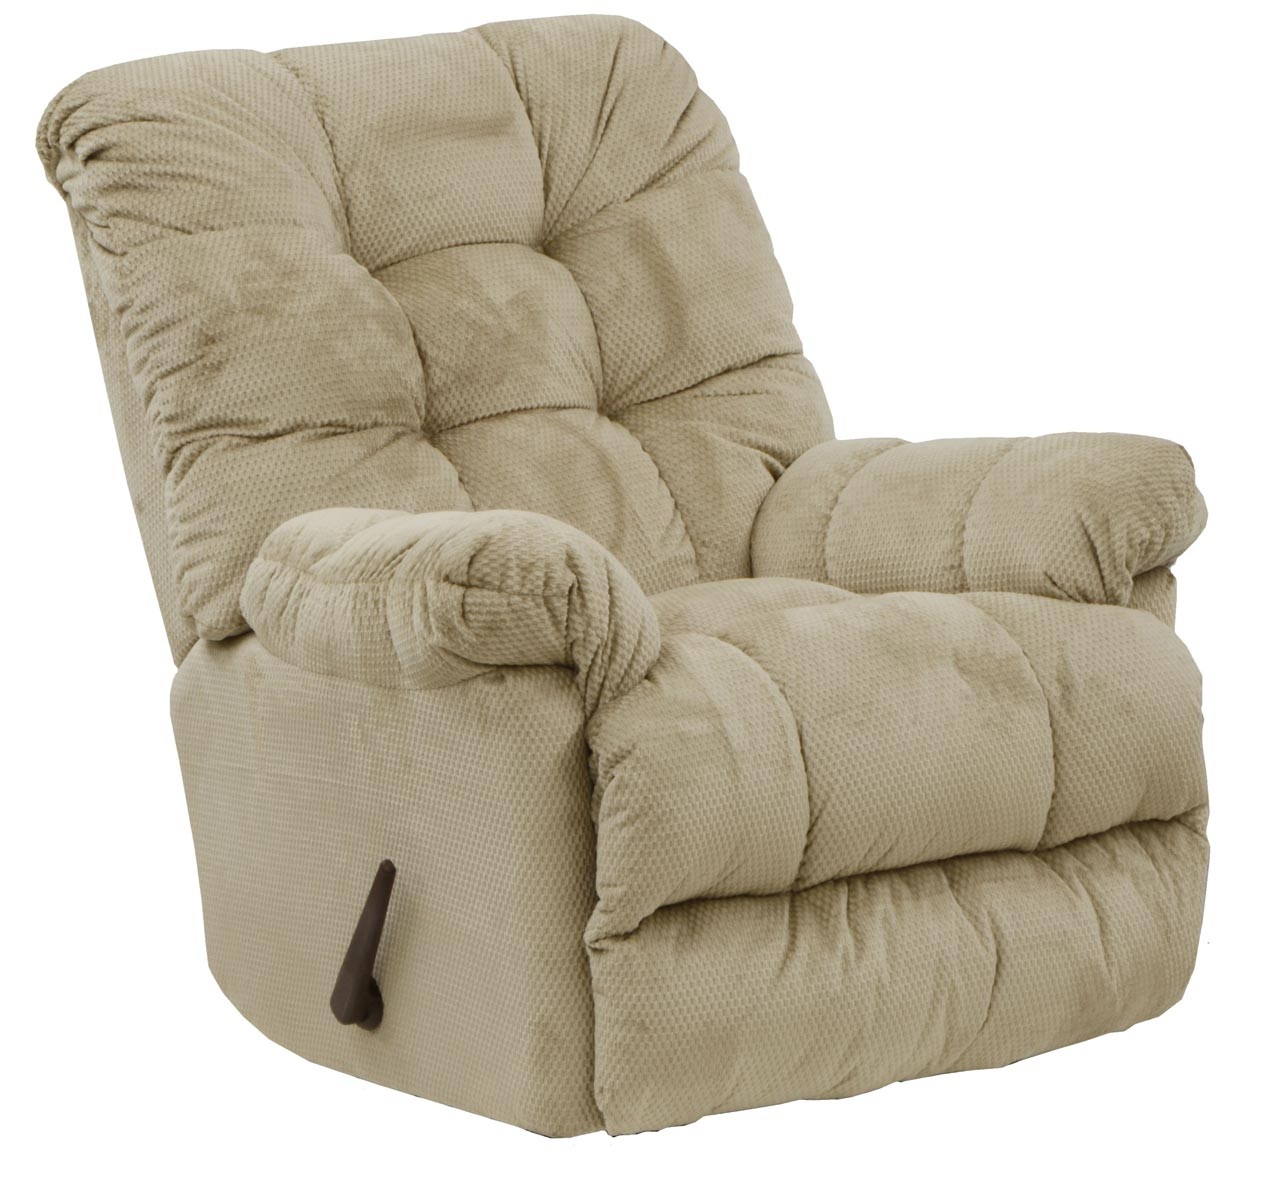 Catnapper nettles chaise rocker recliner with deluxe heat for Catnapper chaise